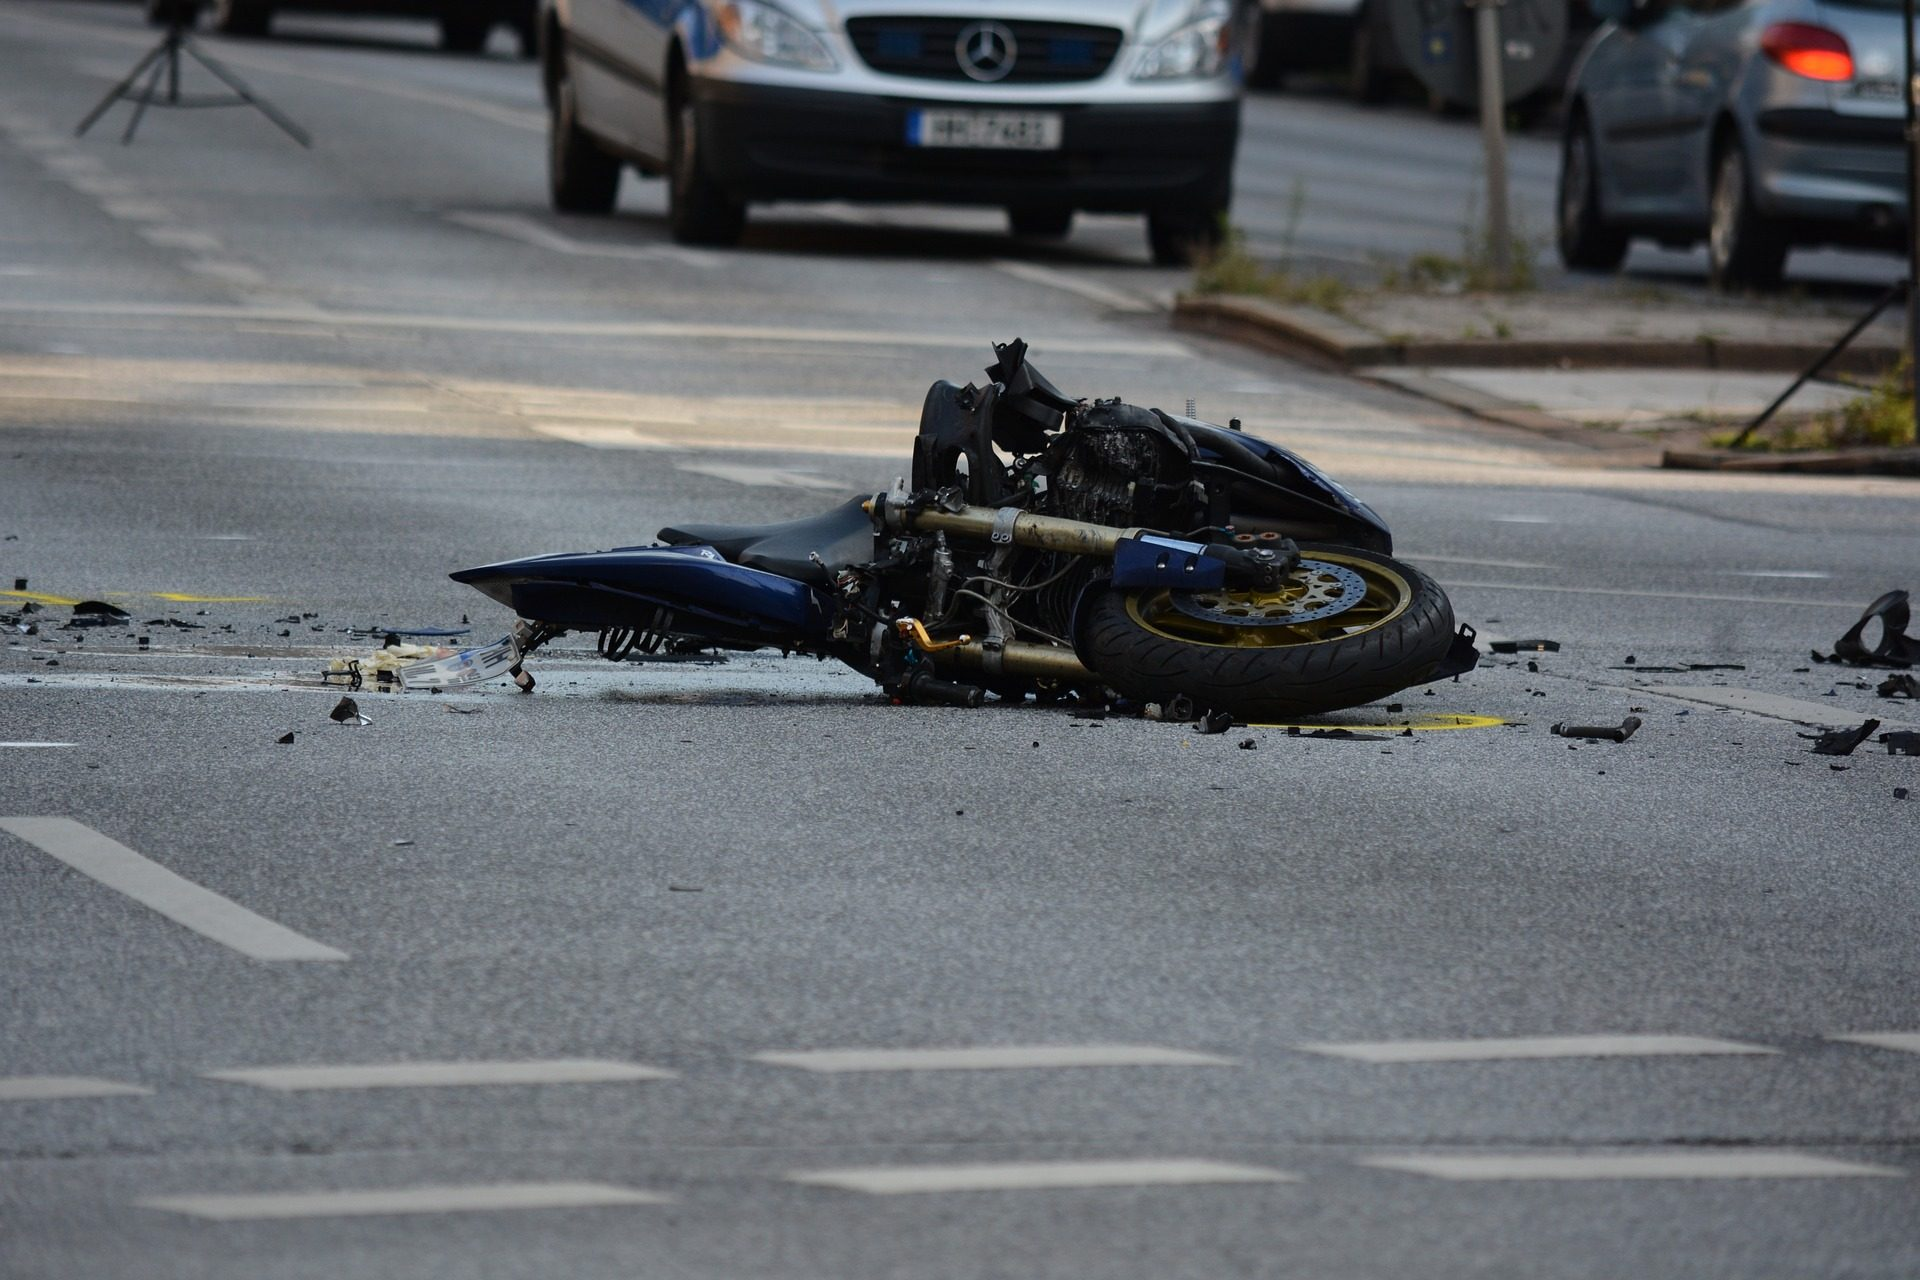 Motorcycle Accidents Jeopardize NYC Public Safety